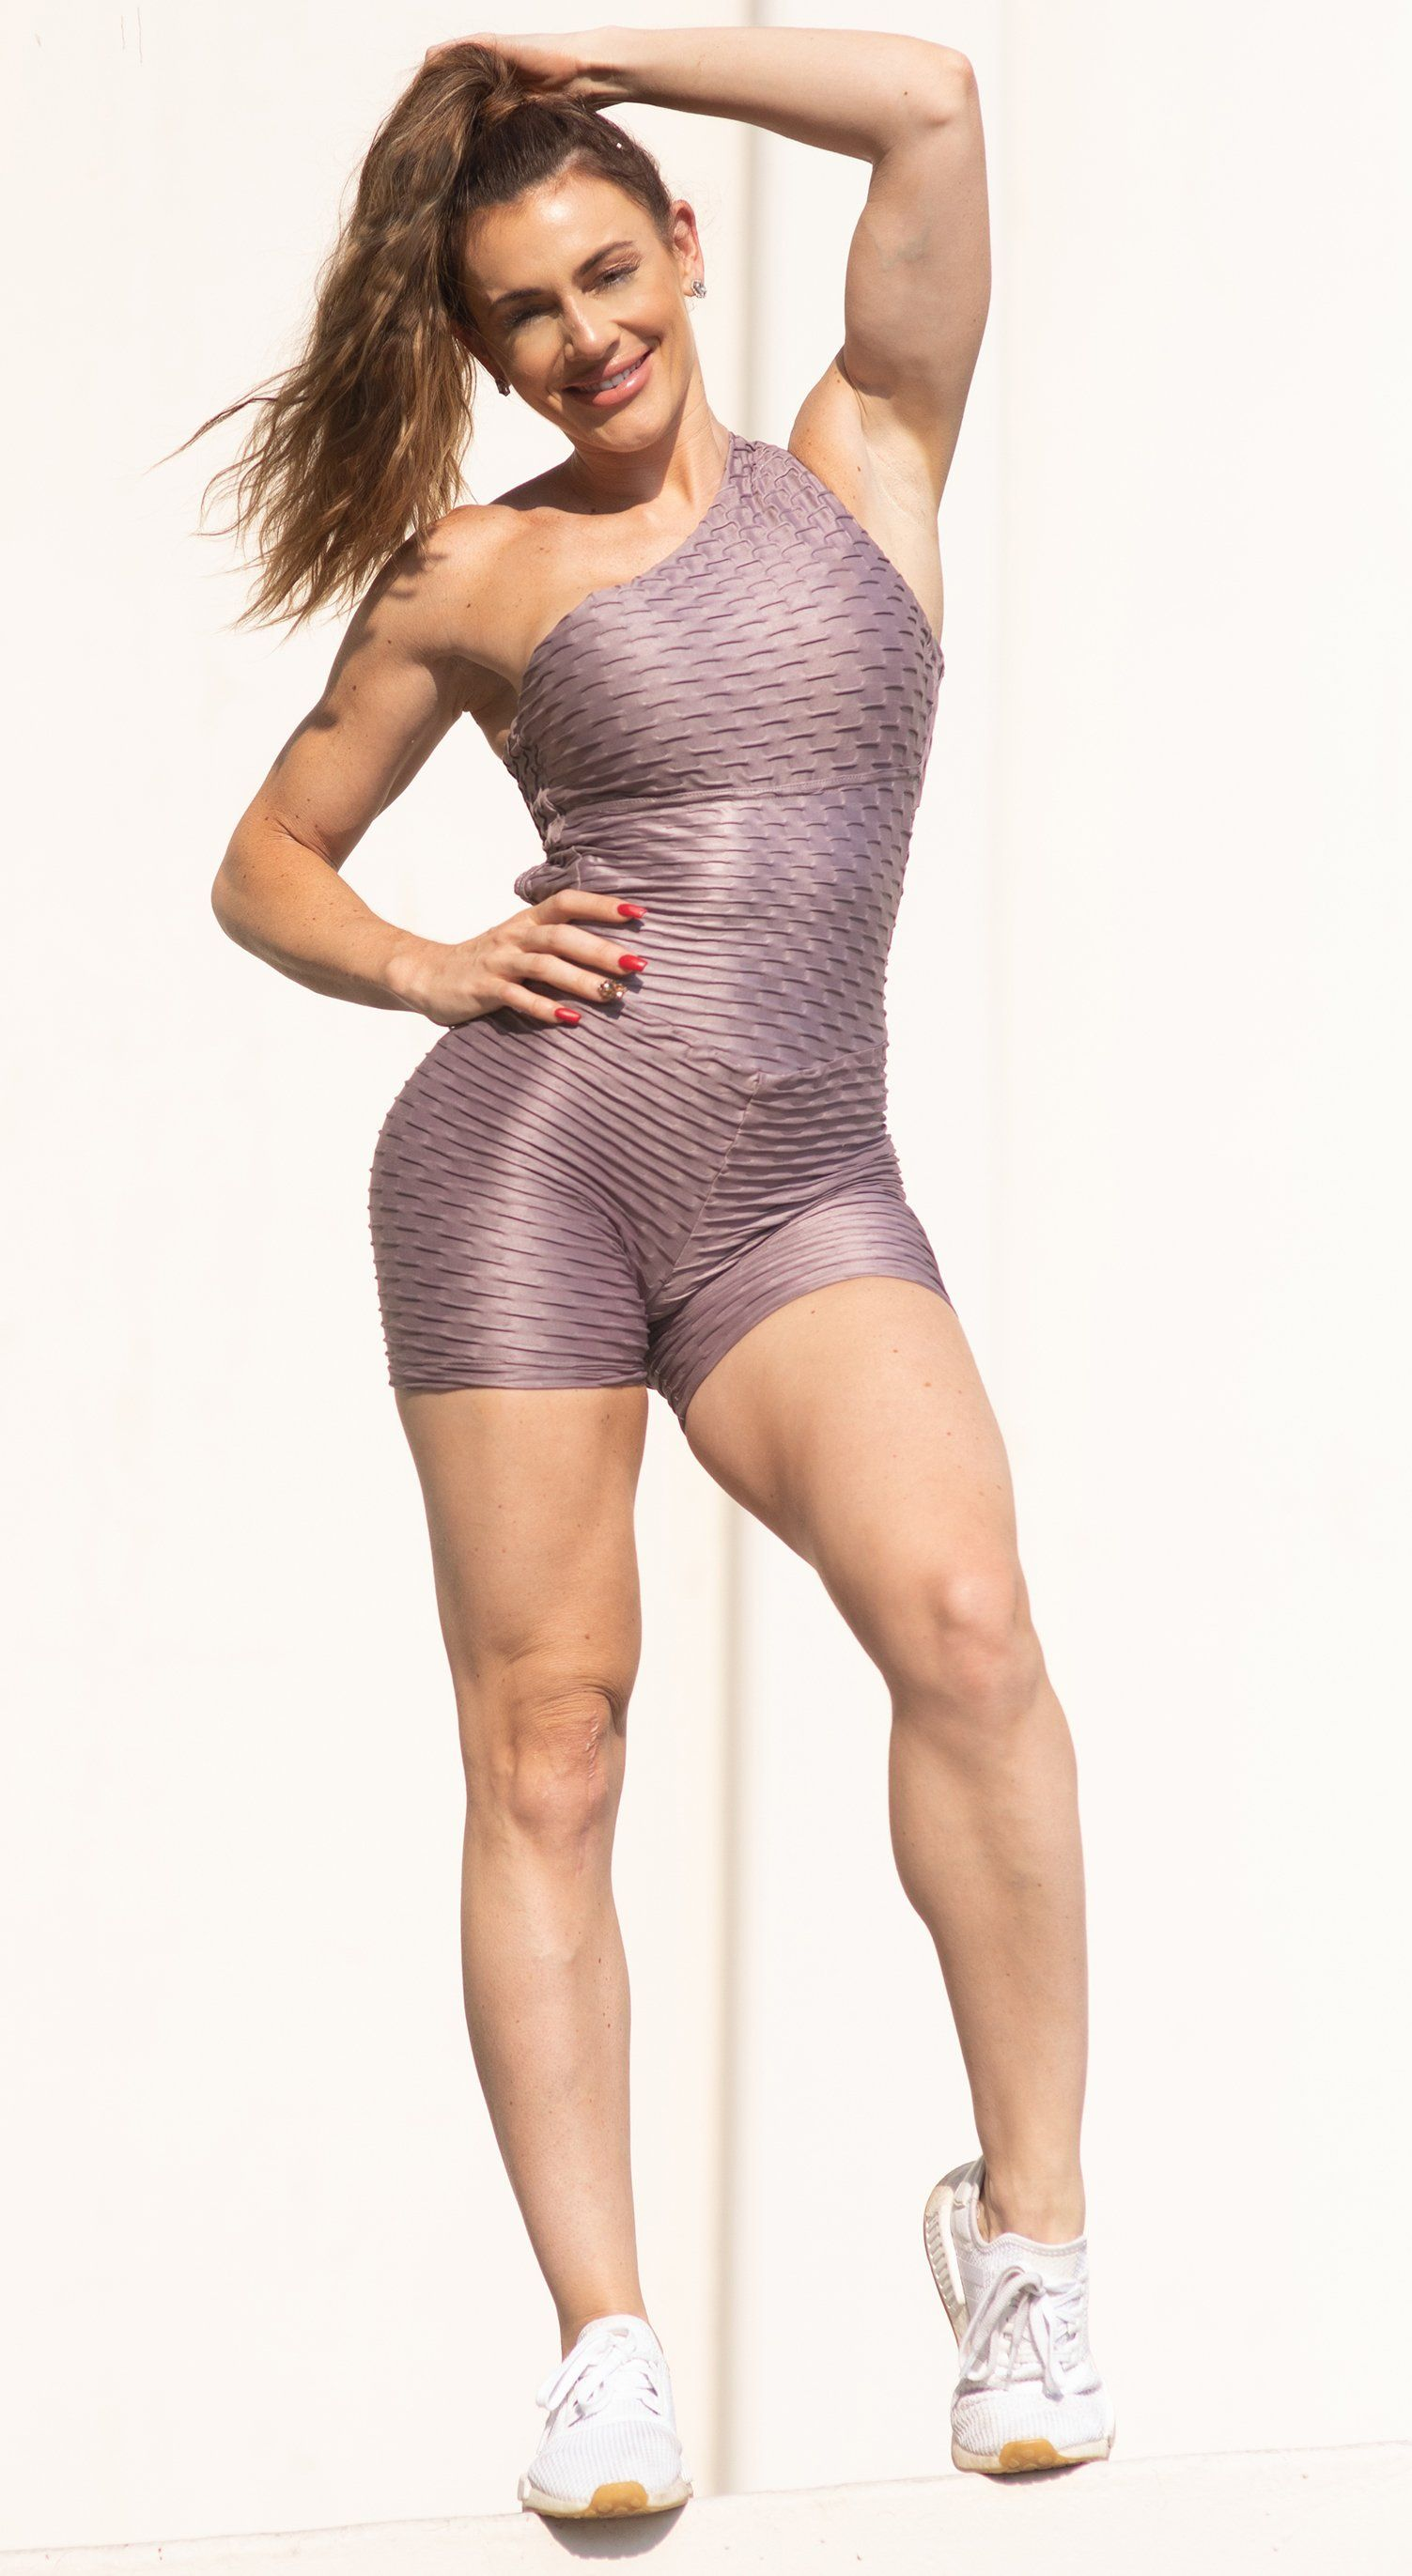 Short Fitness Jumpsuit - Honeycomb Scrunch Booty Shinny Plum